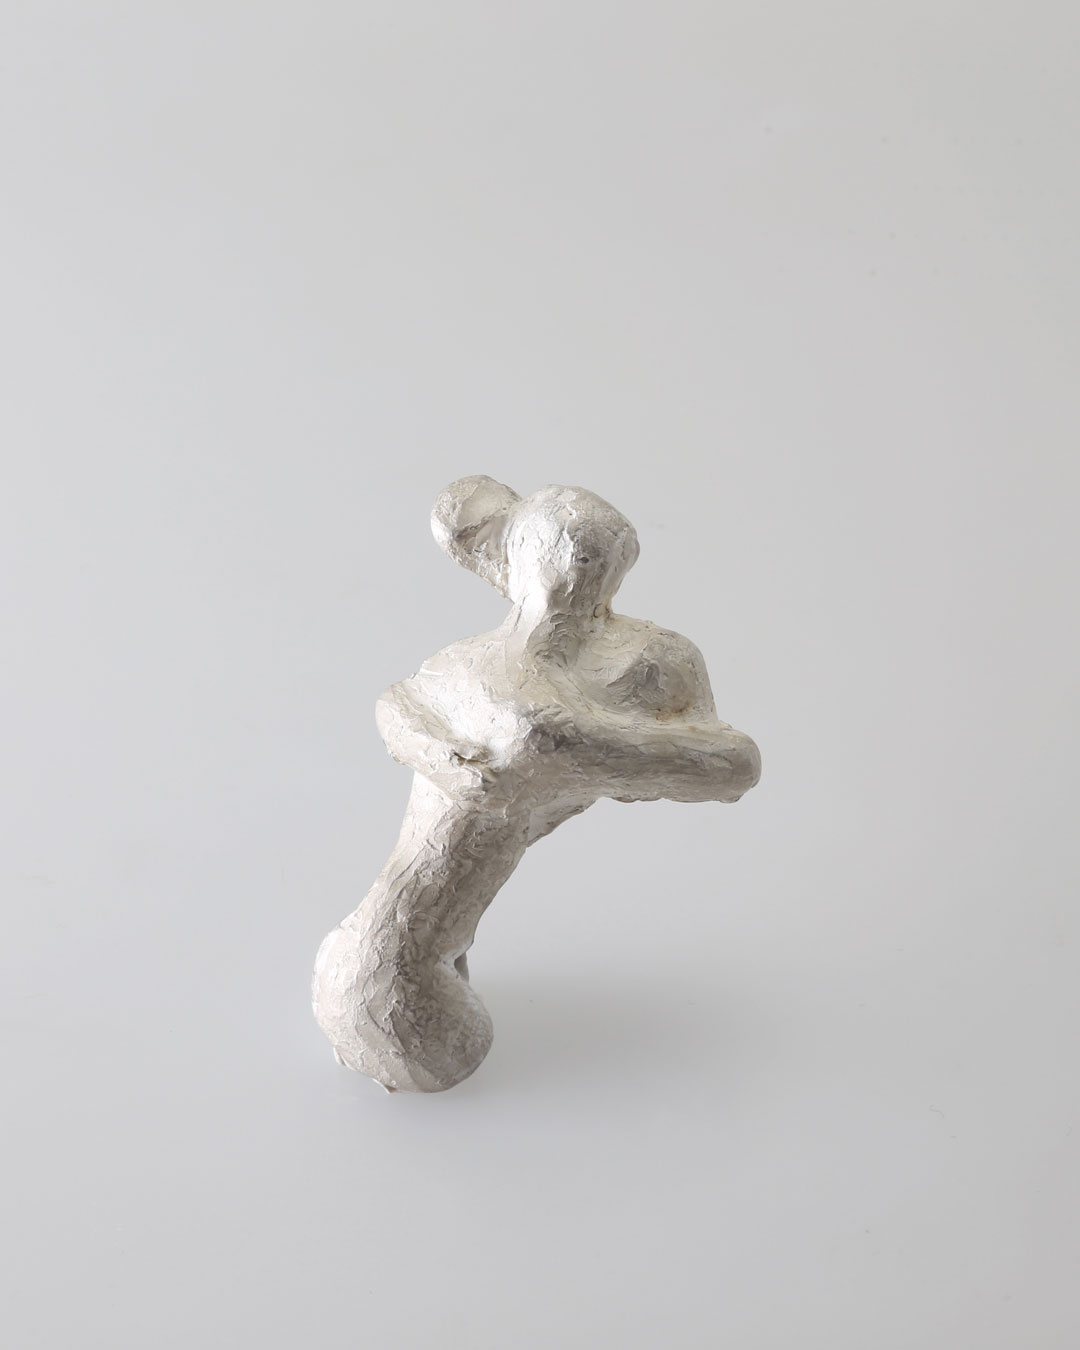 Juliane Brandes, untitled, 2016, brooch; silver, 60 x 40 x 15 mm, €1460